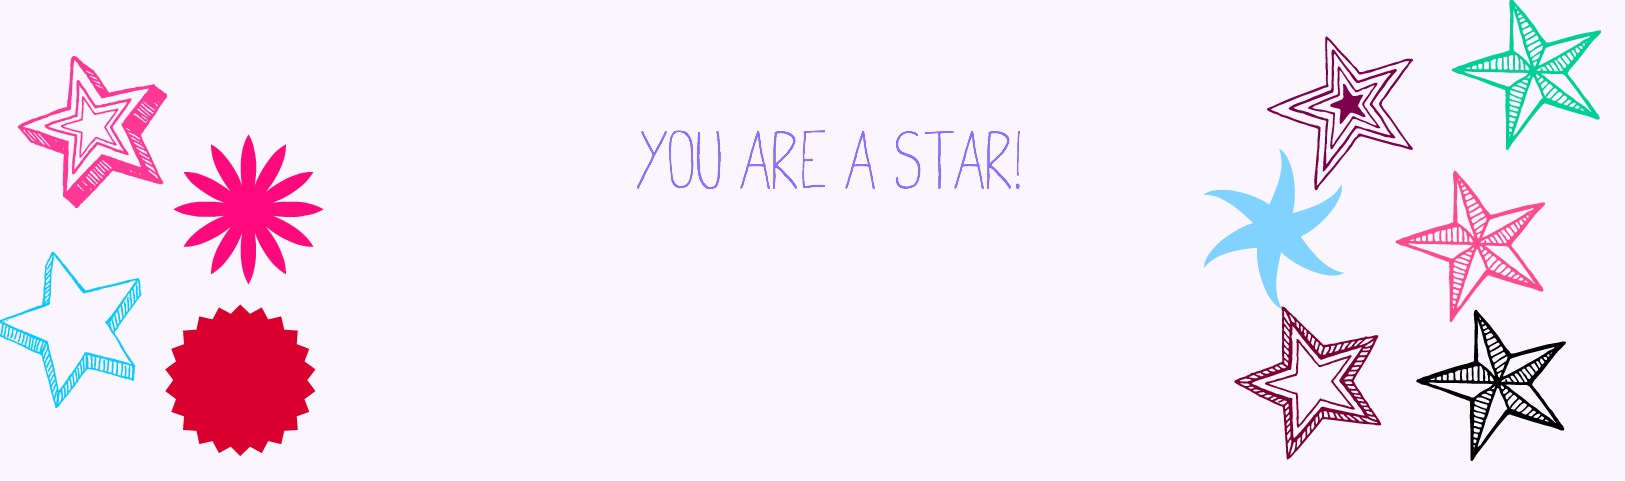 You are star